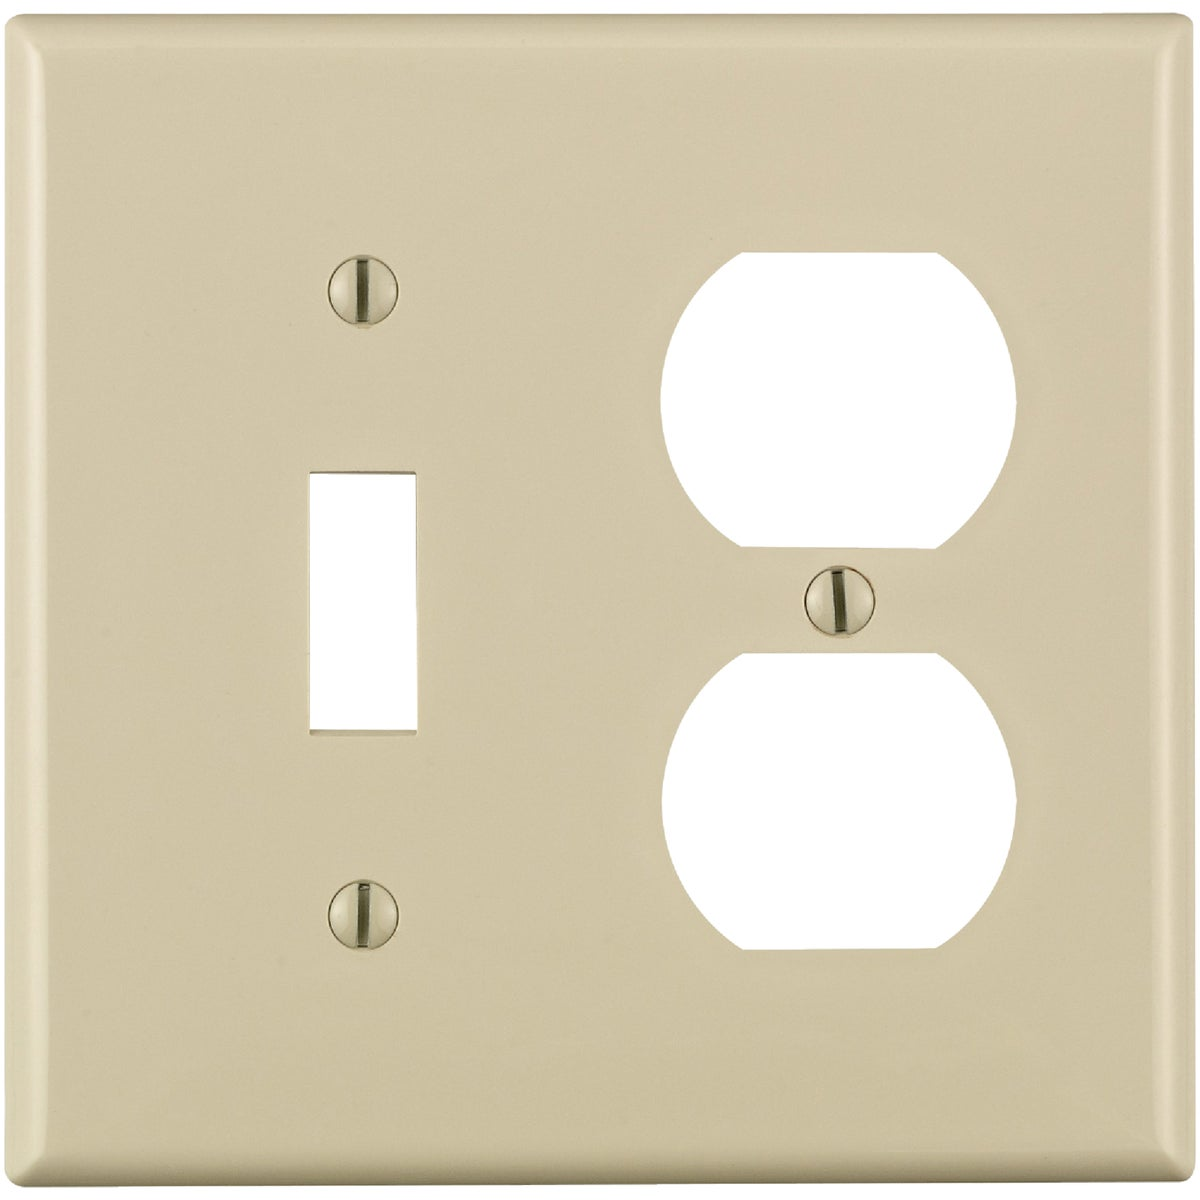 LT ALM COMBO WALLPLATE - 014-80705-OOT by Leviton Mfg Co